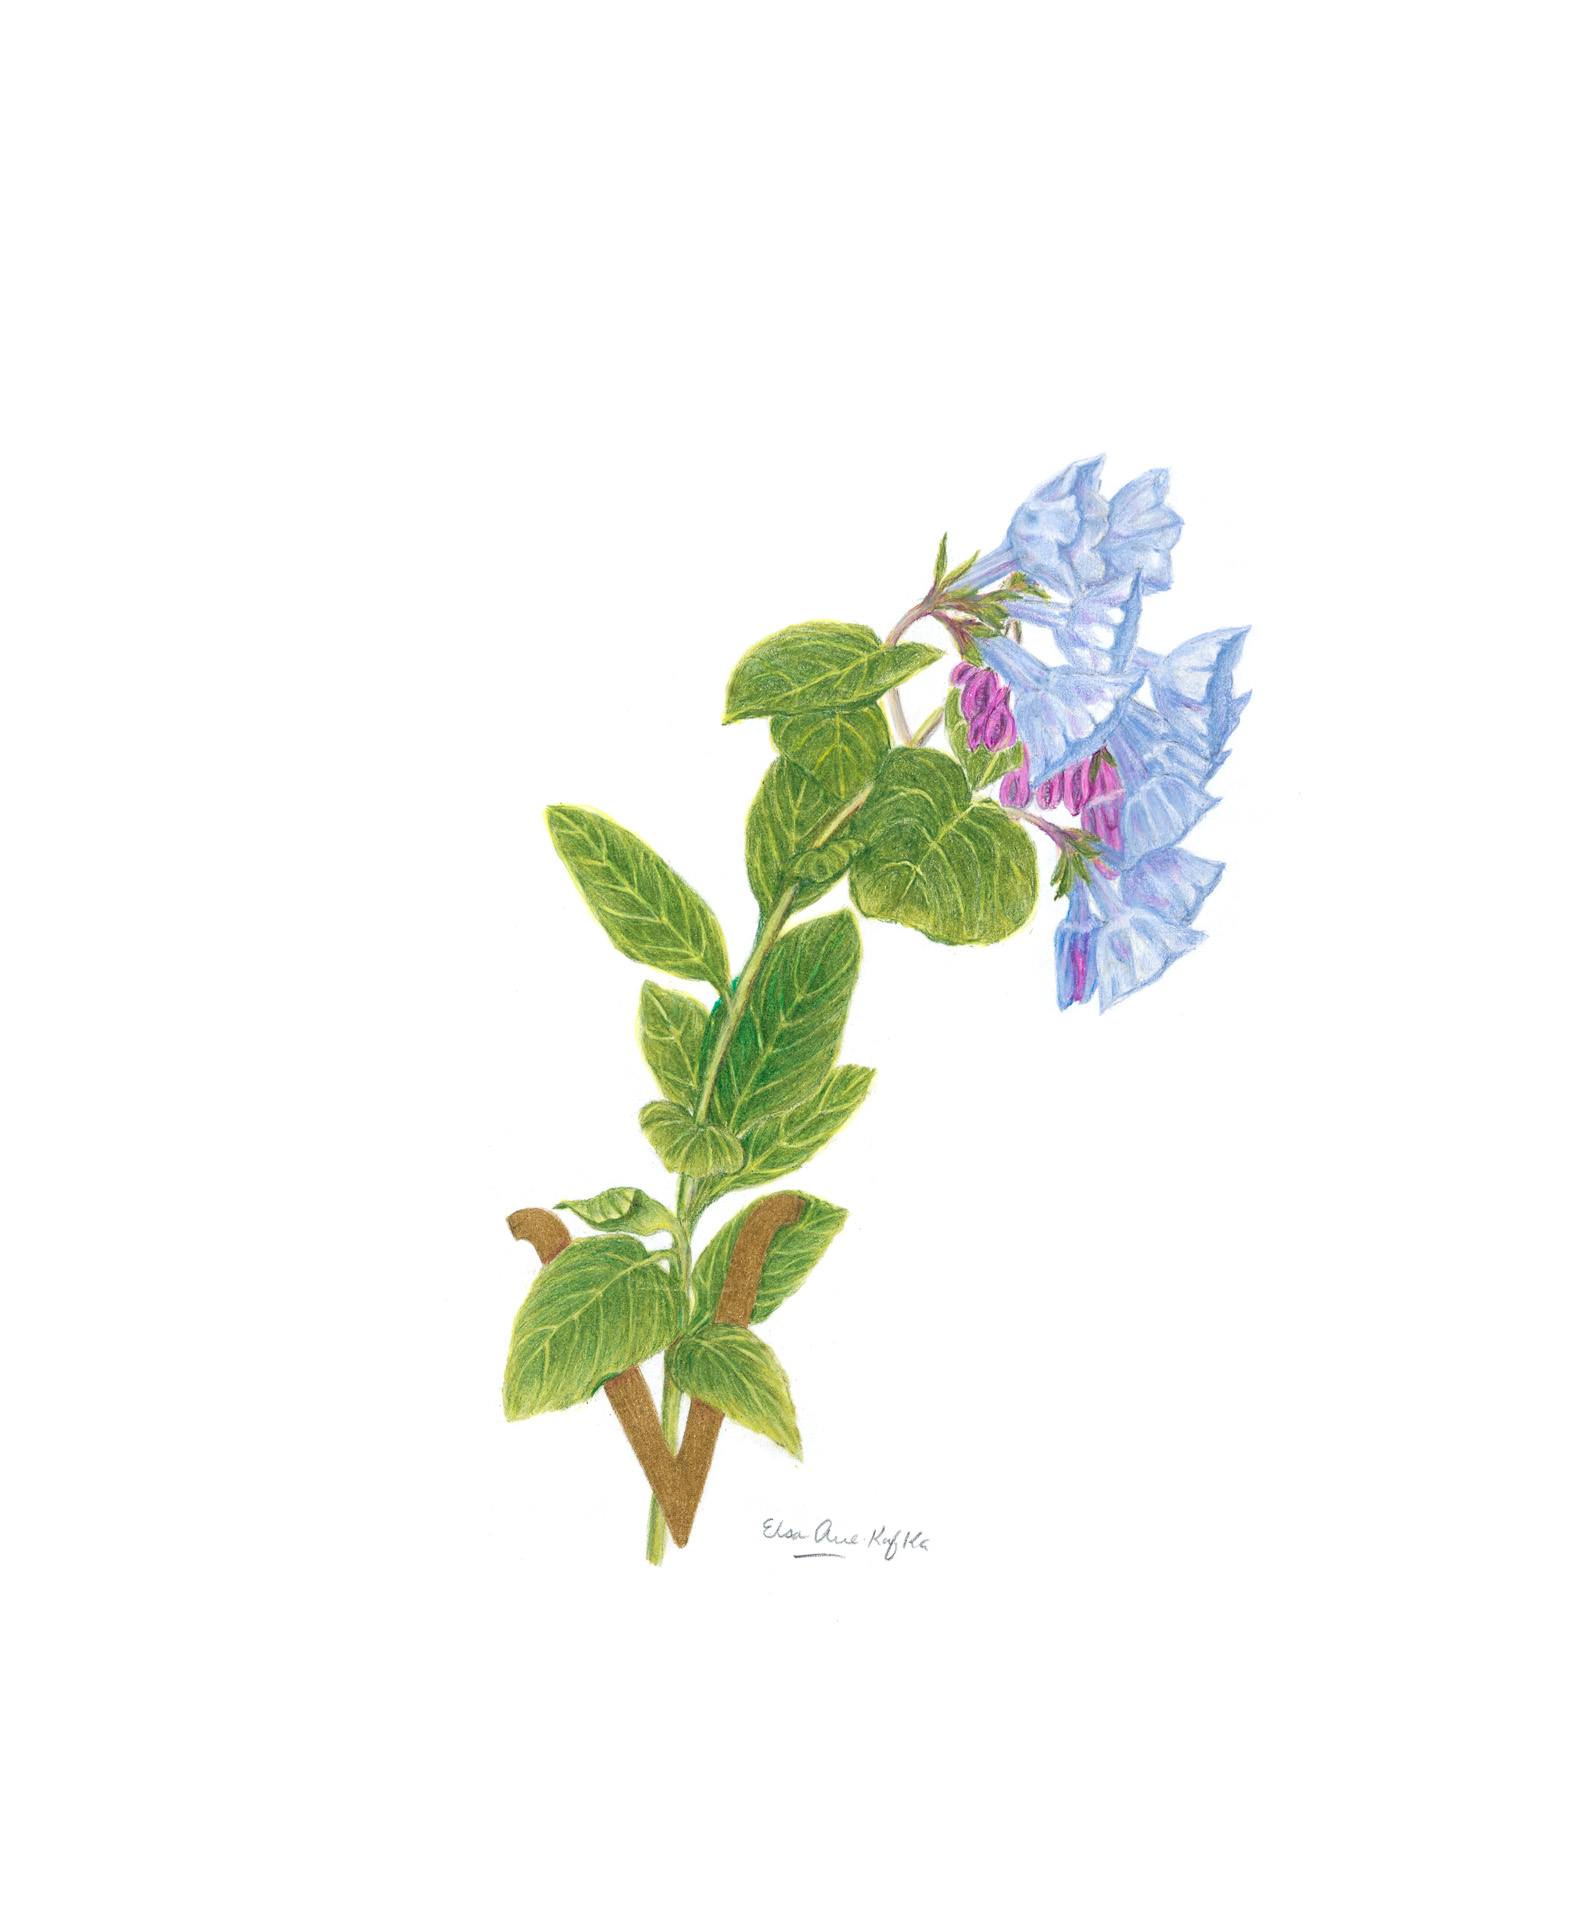 Virginia bluebells, Mertensia virginica, Watercolor and colored pencil by Elsa Arce